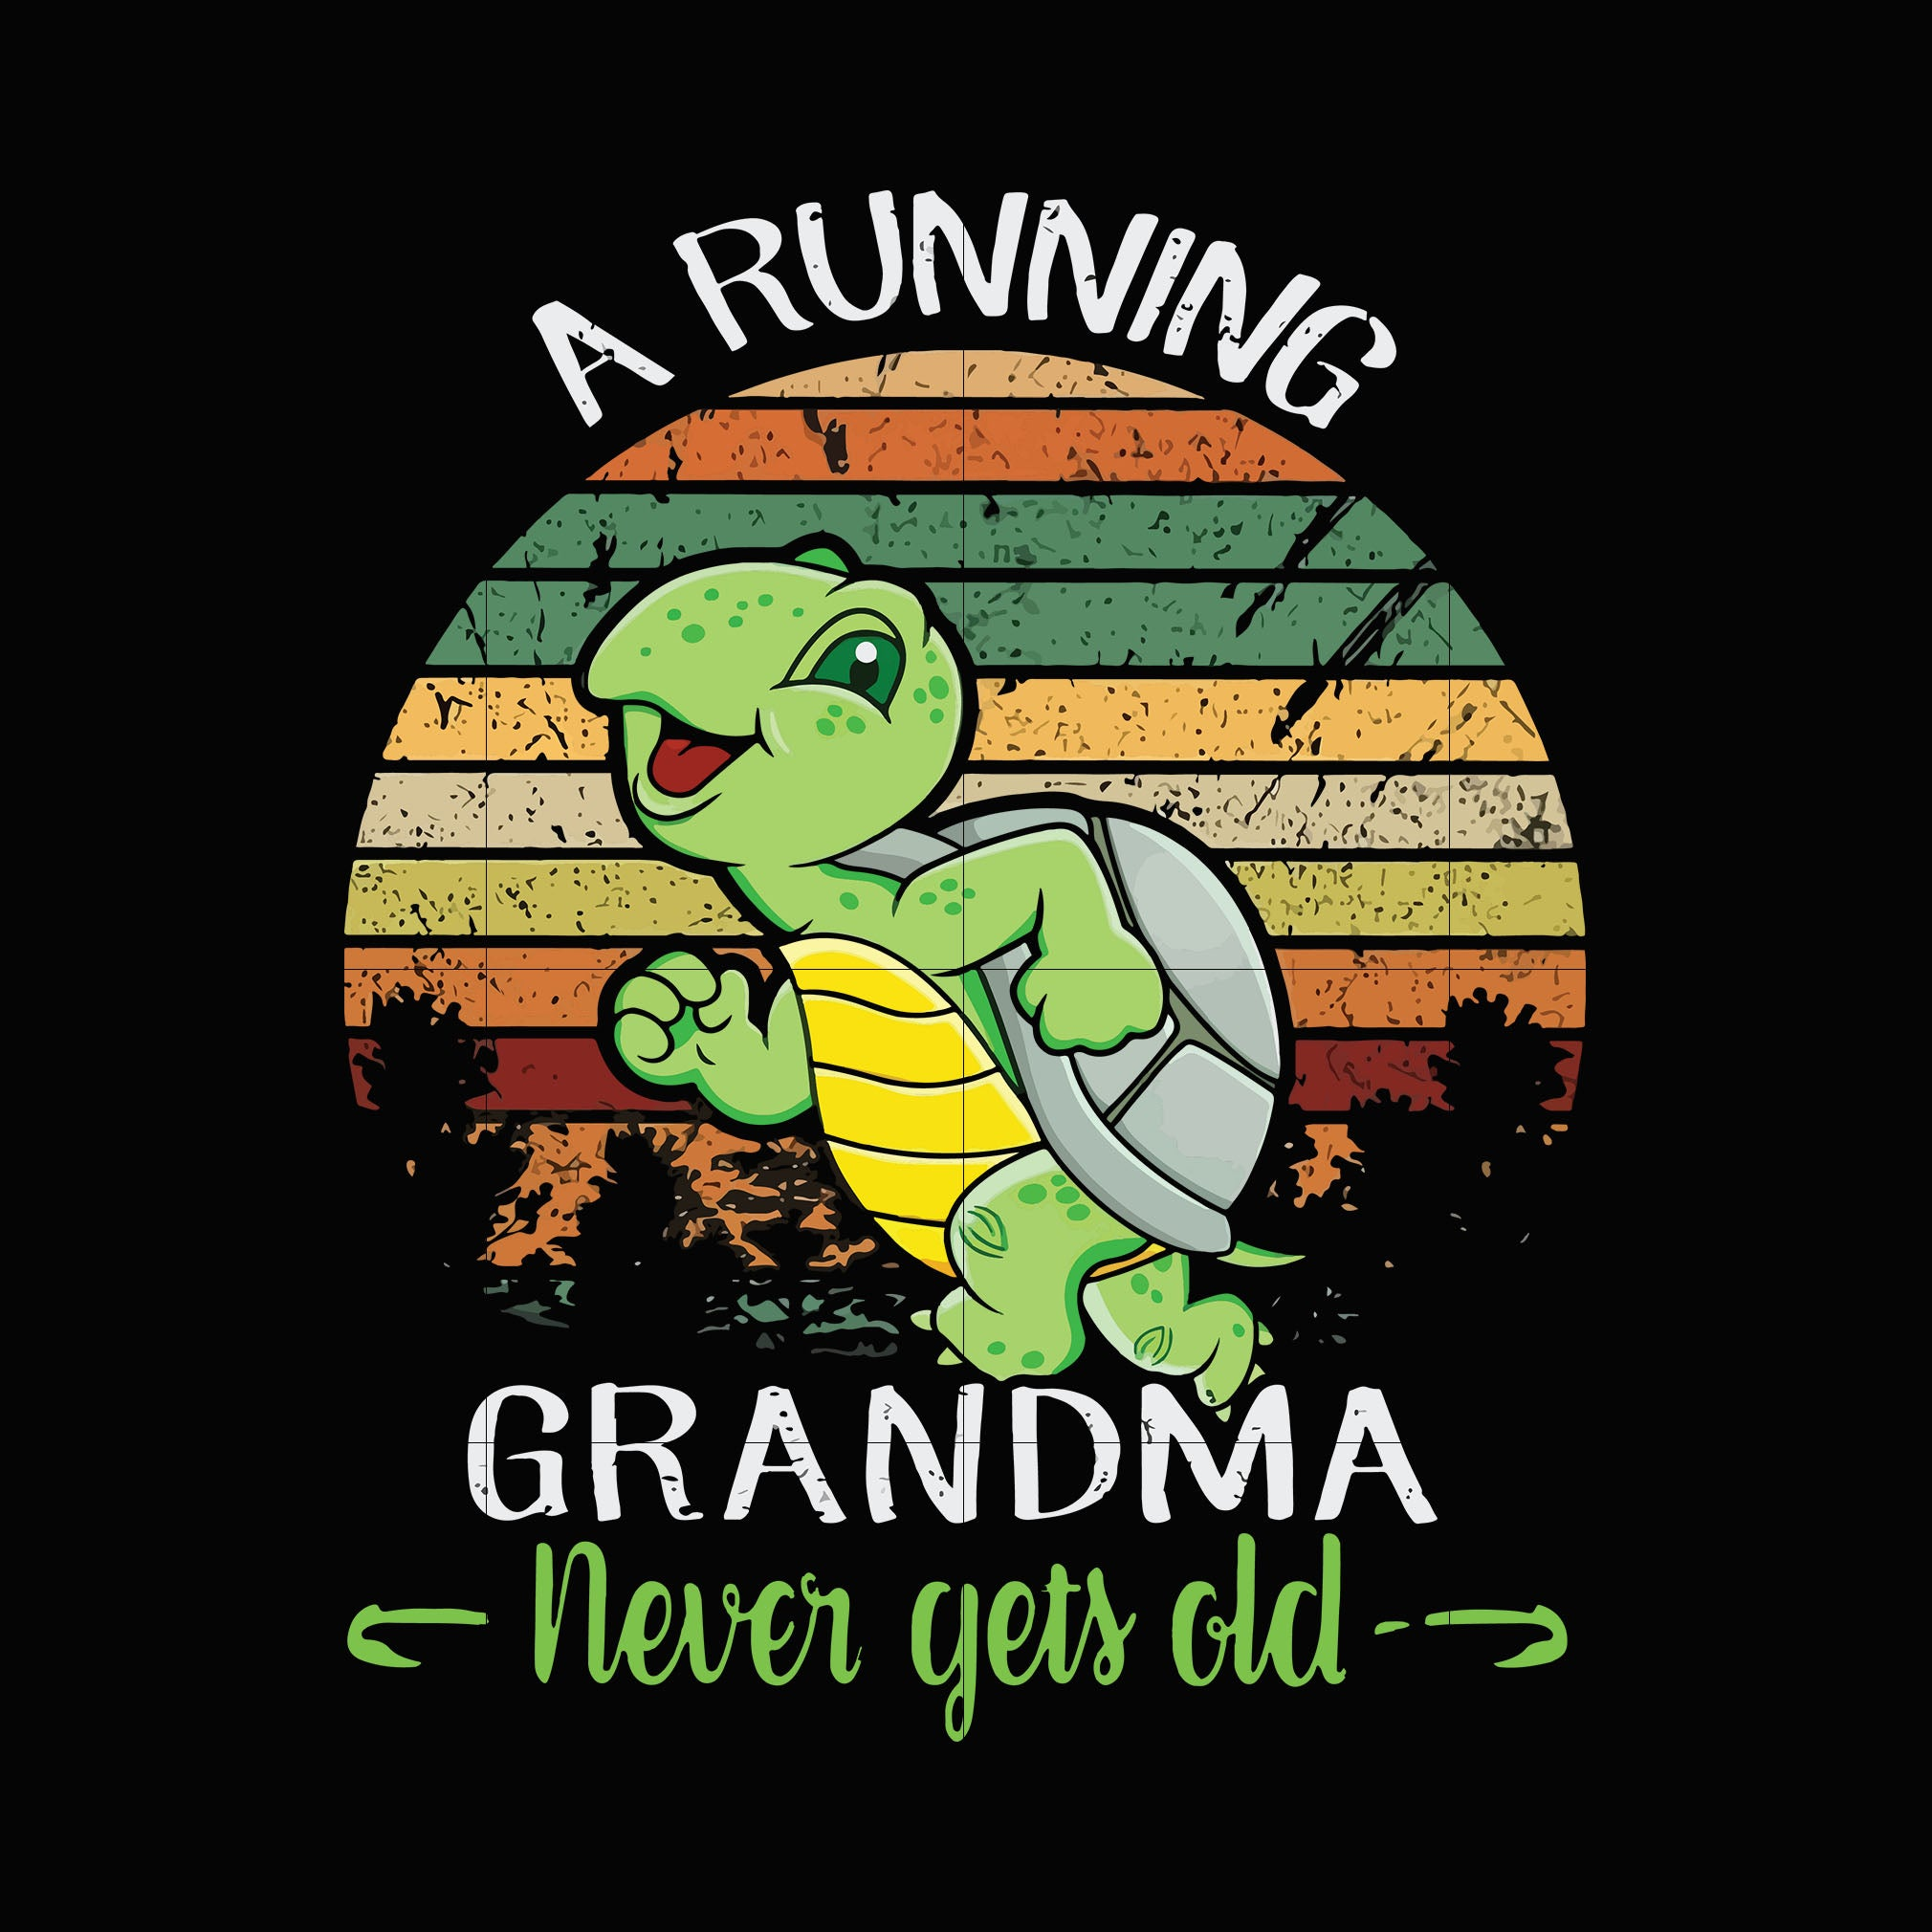 A running grandma never gets old svg ,dxf,eps,png digital file